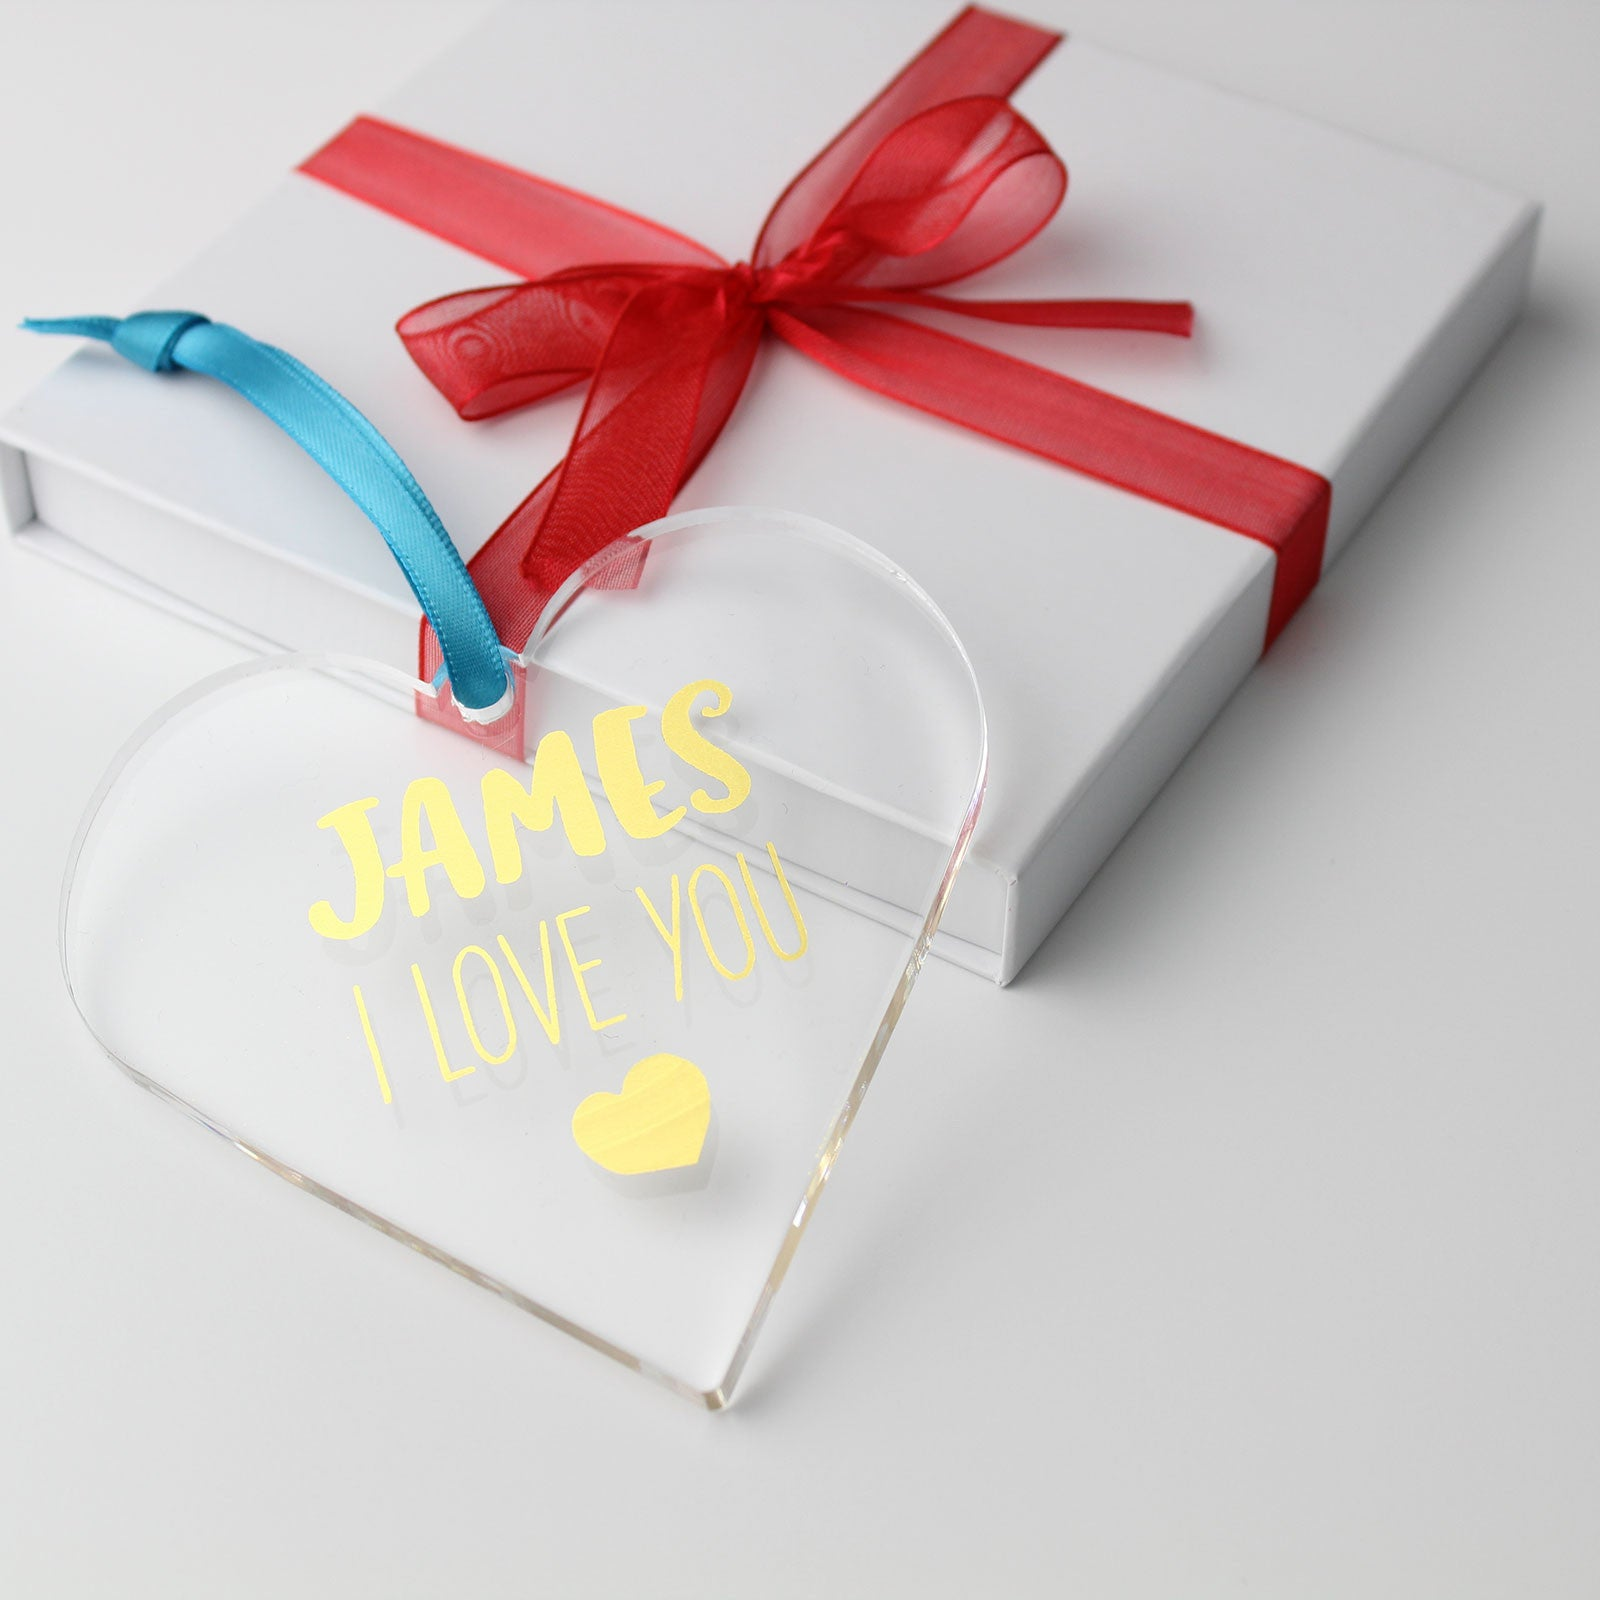 I Love You Foiled Heart with Gift Box Packaging